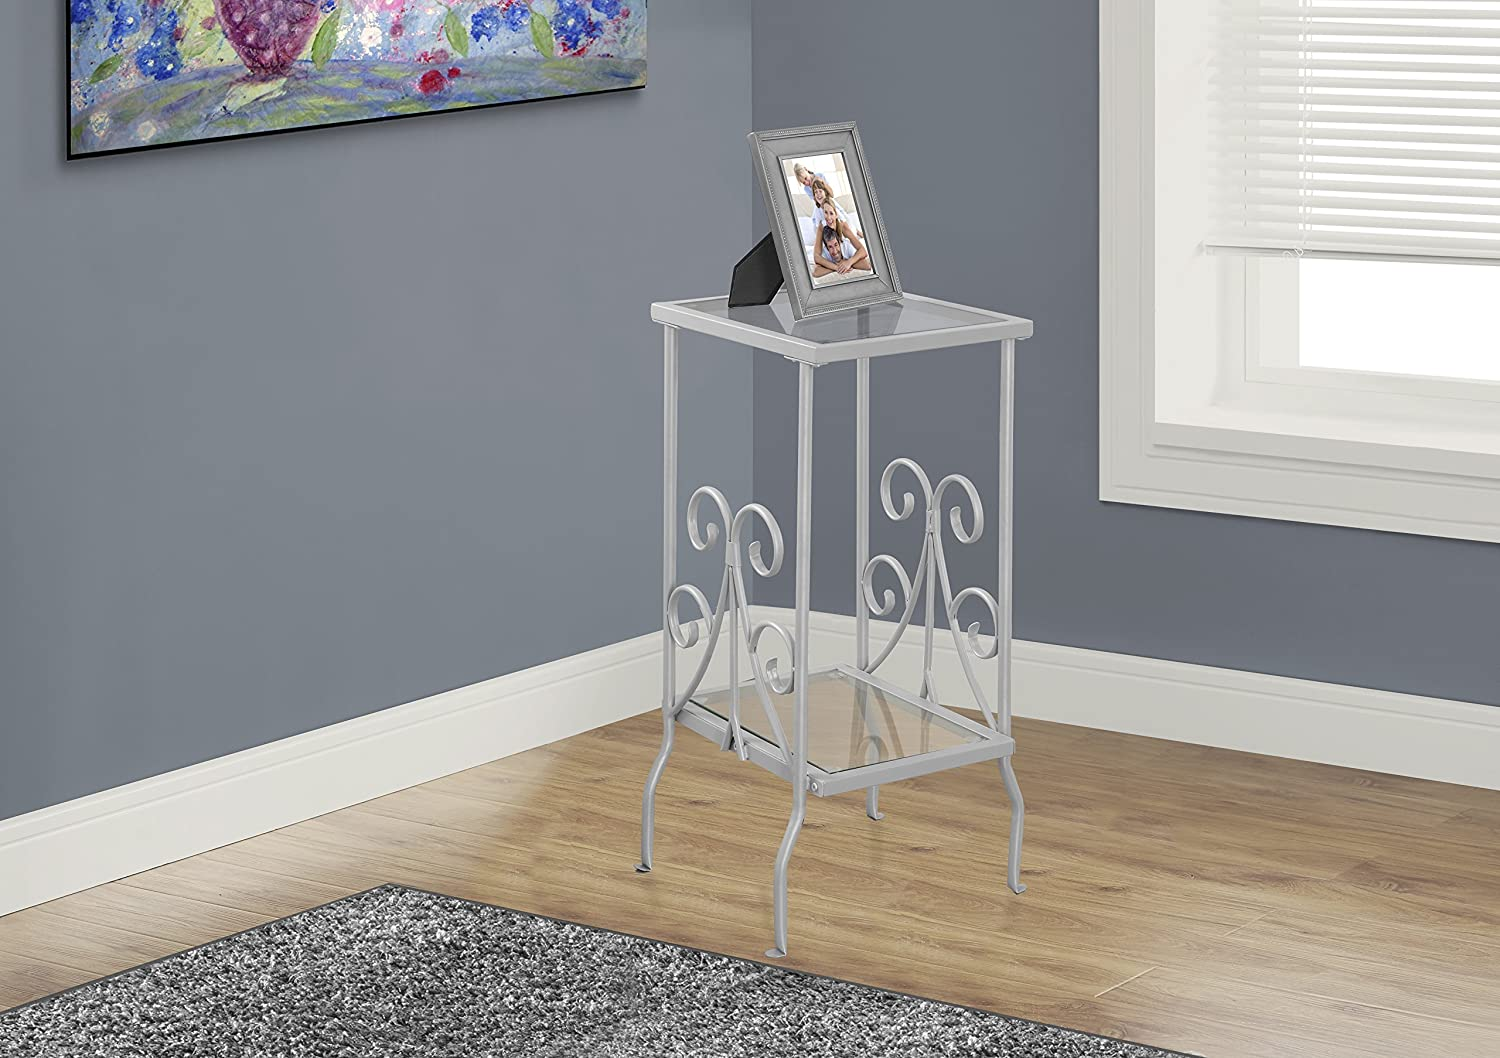 Monarch Specialties I 3158 Metal Accent Table with Tempered Glass, Silver, 30